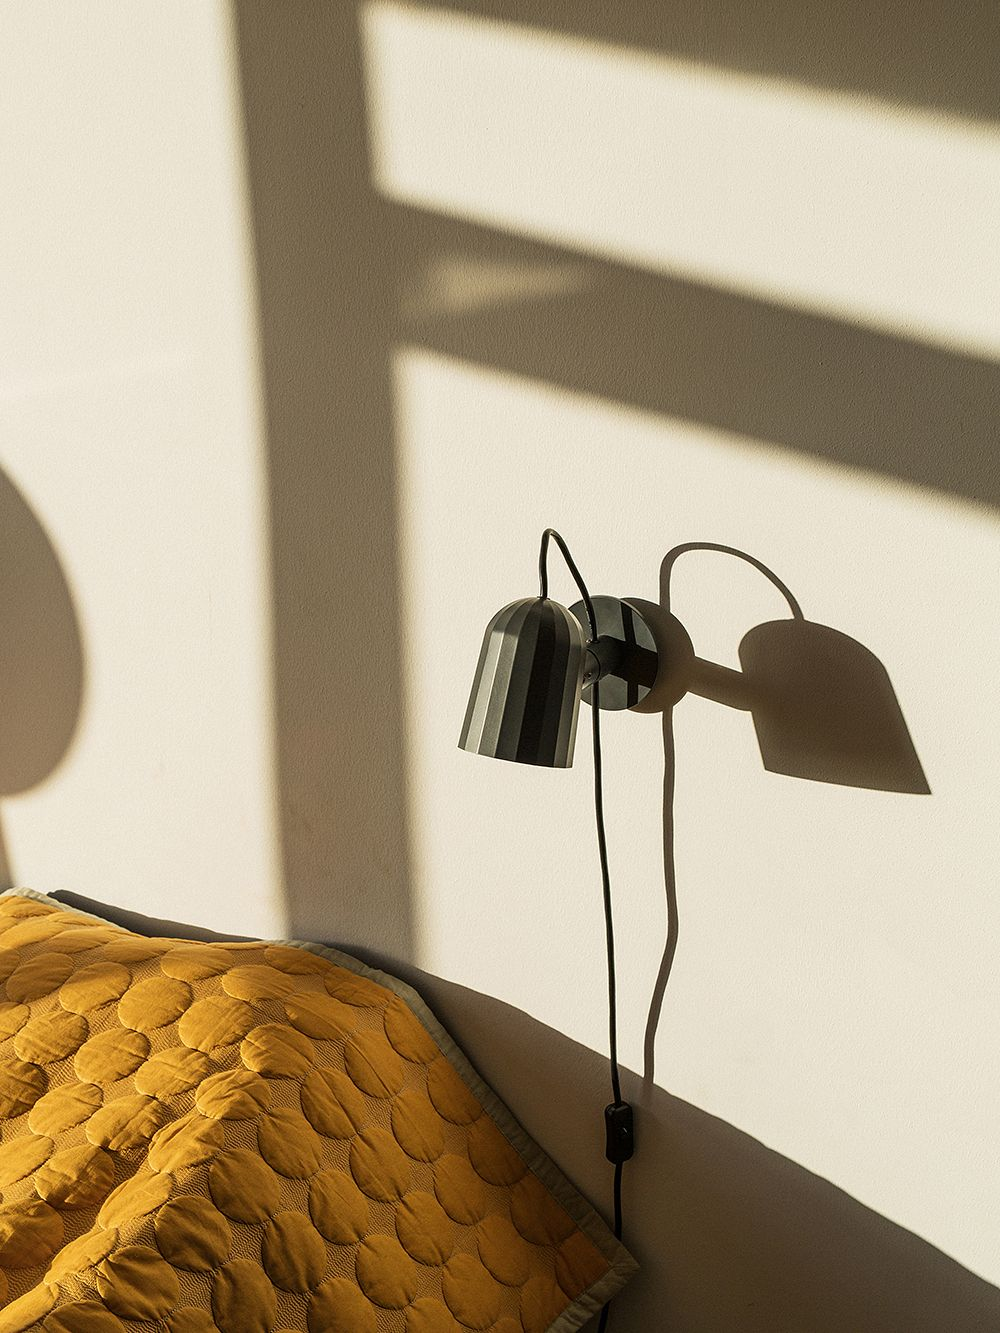 The Noc wall light by Hay in a dark grey color, attached to a bedroom wall.